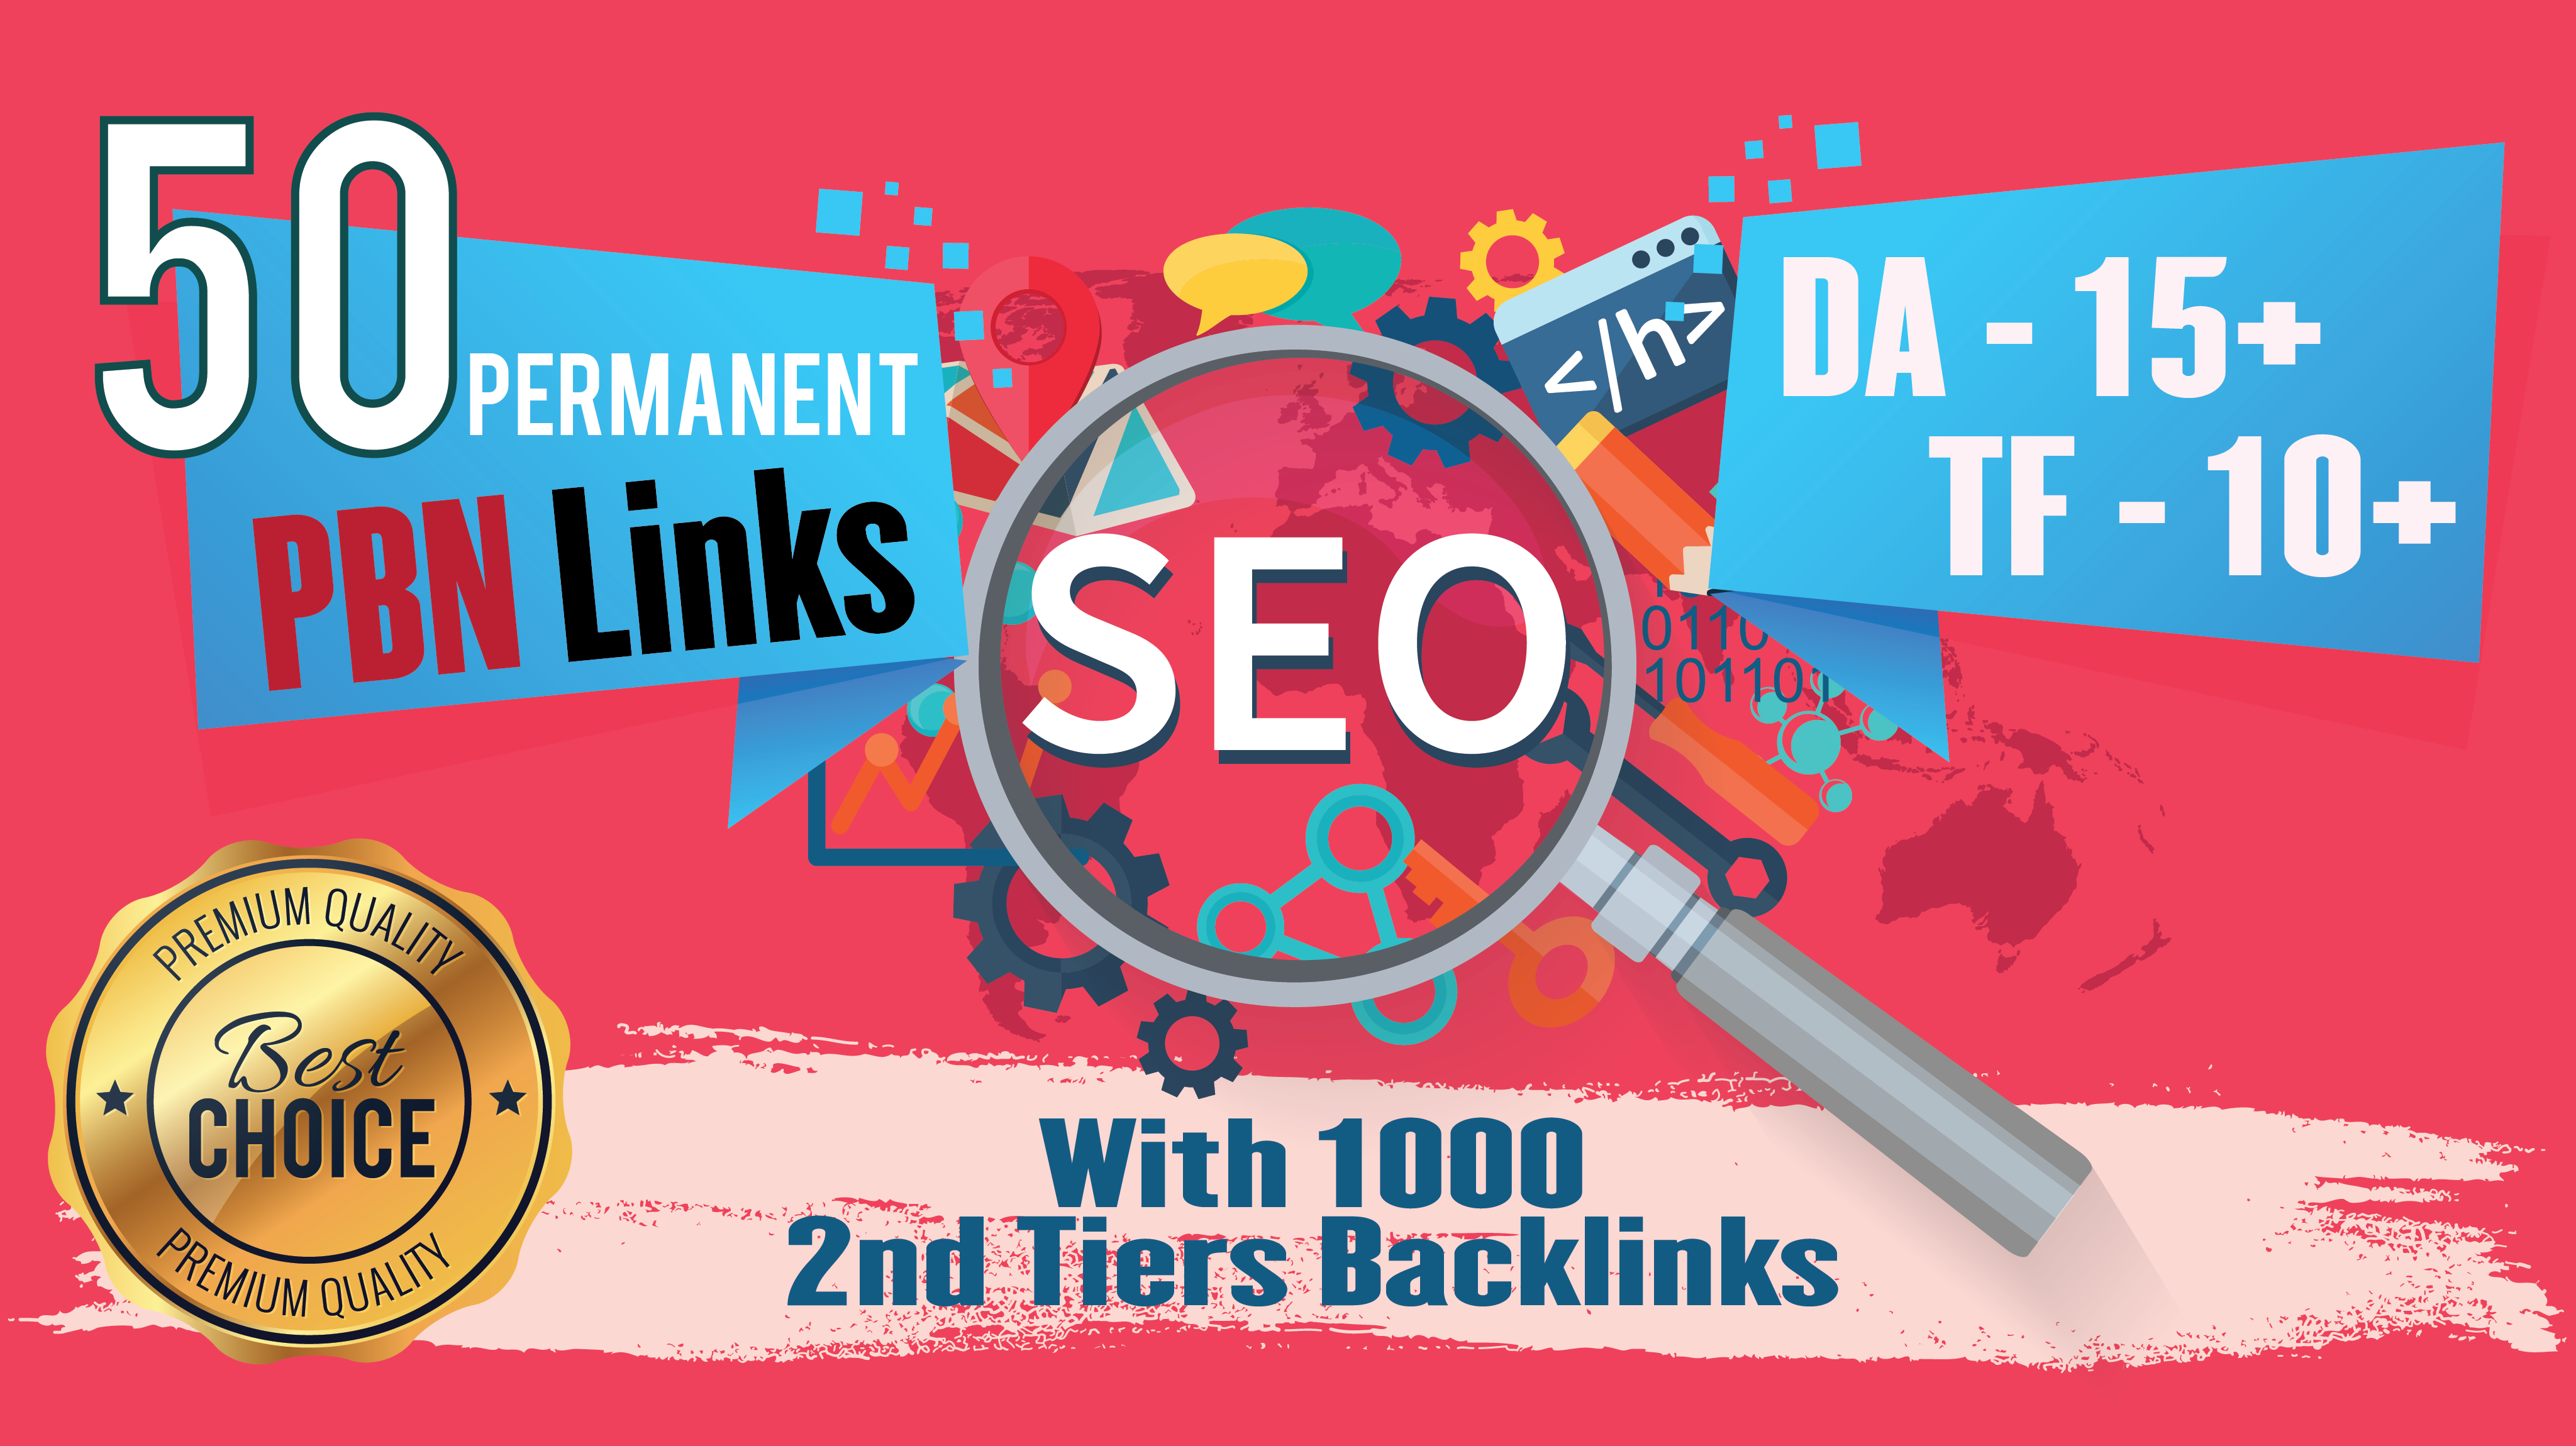 Permanent 50 Homepage Dofollow PBN With 1000 2nd Tiers Backlinks